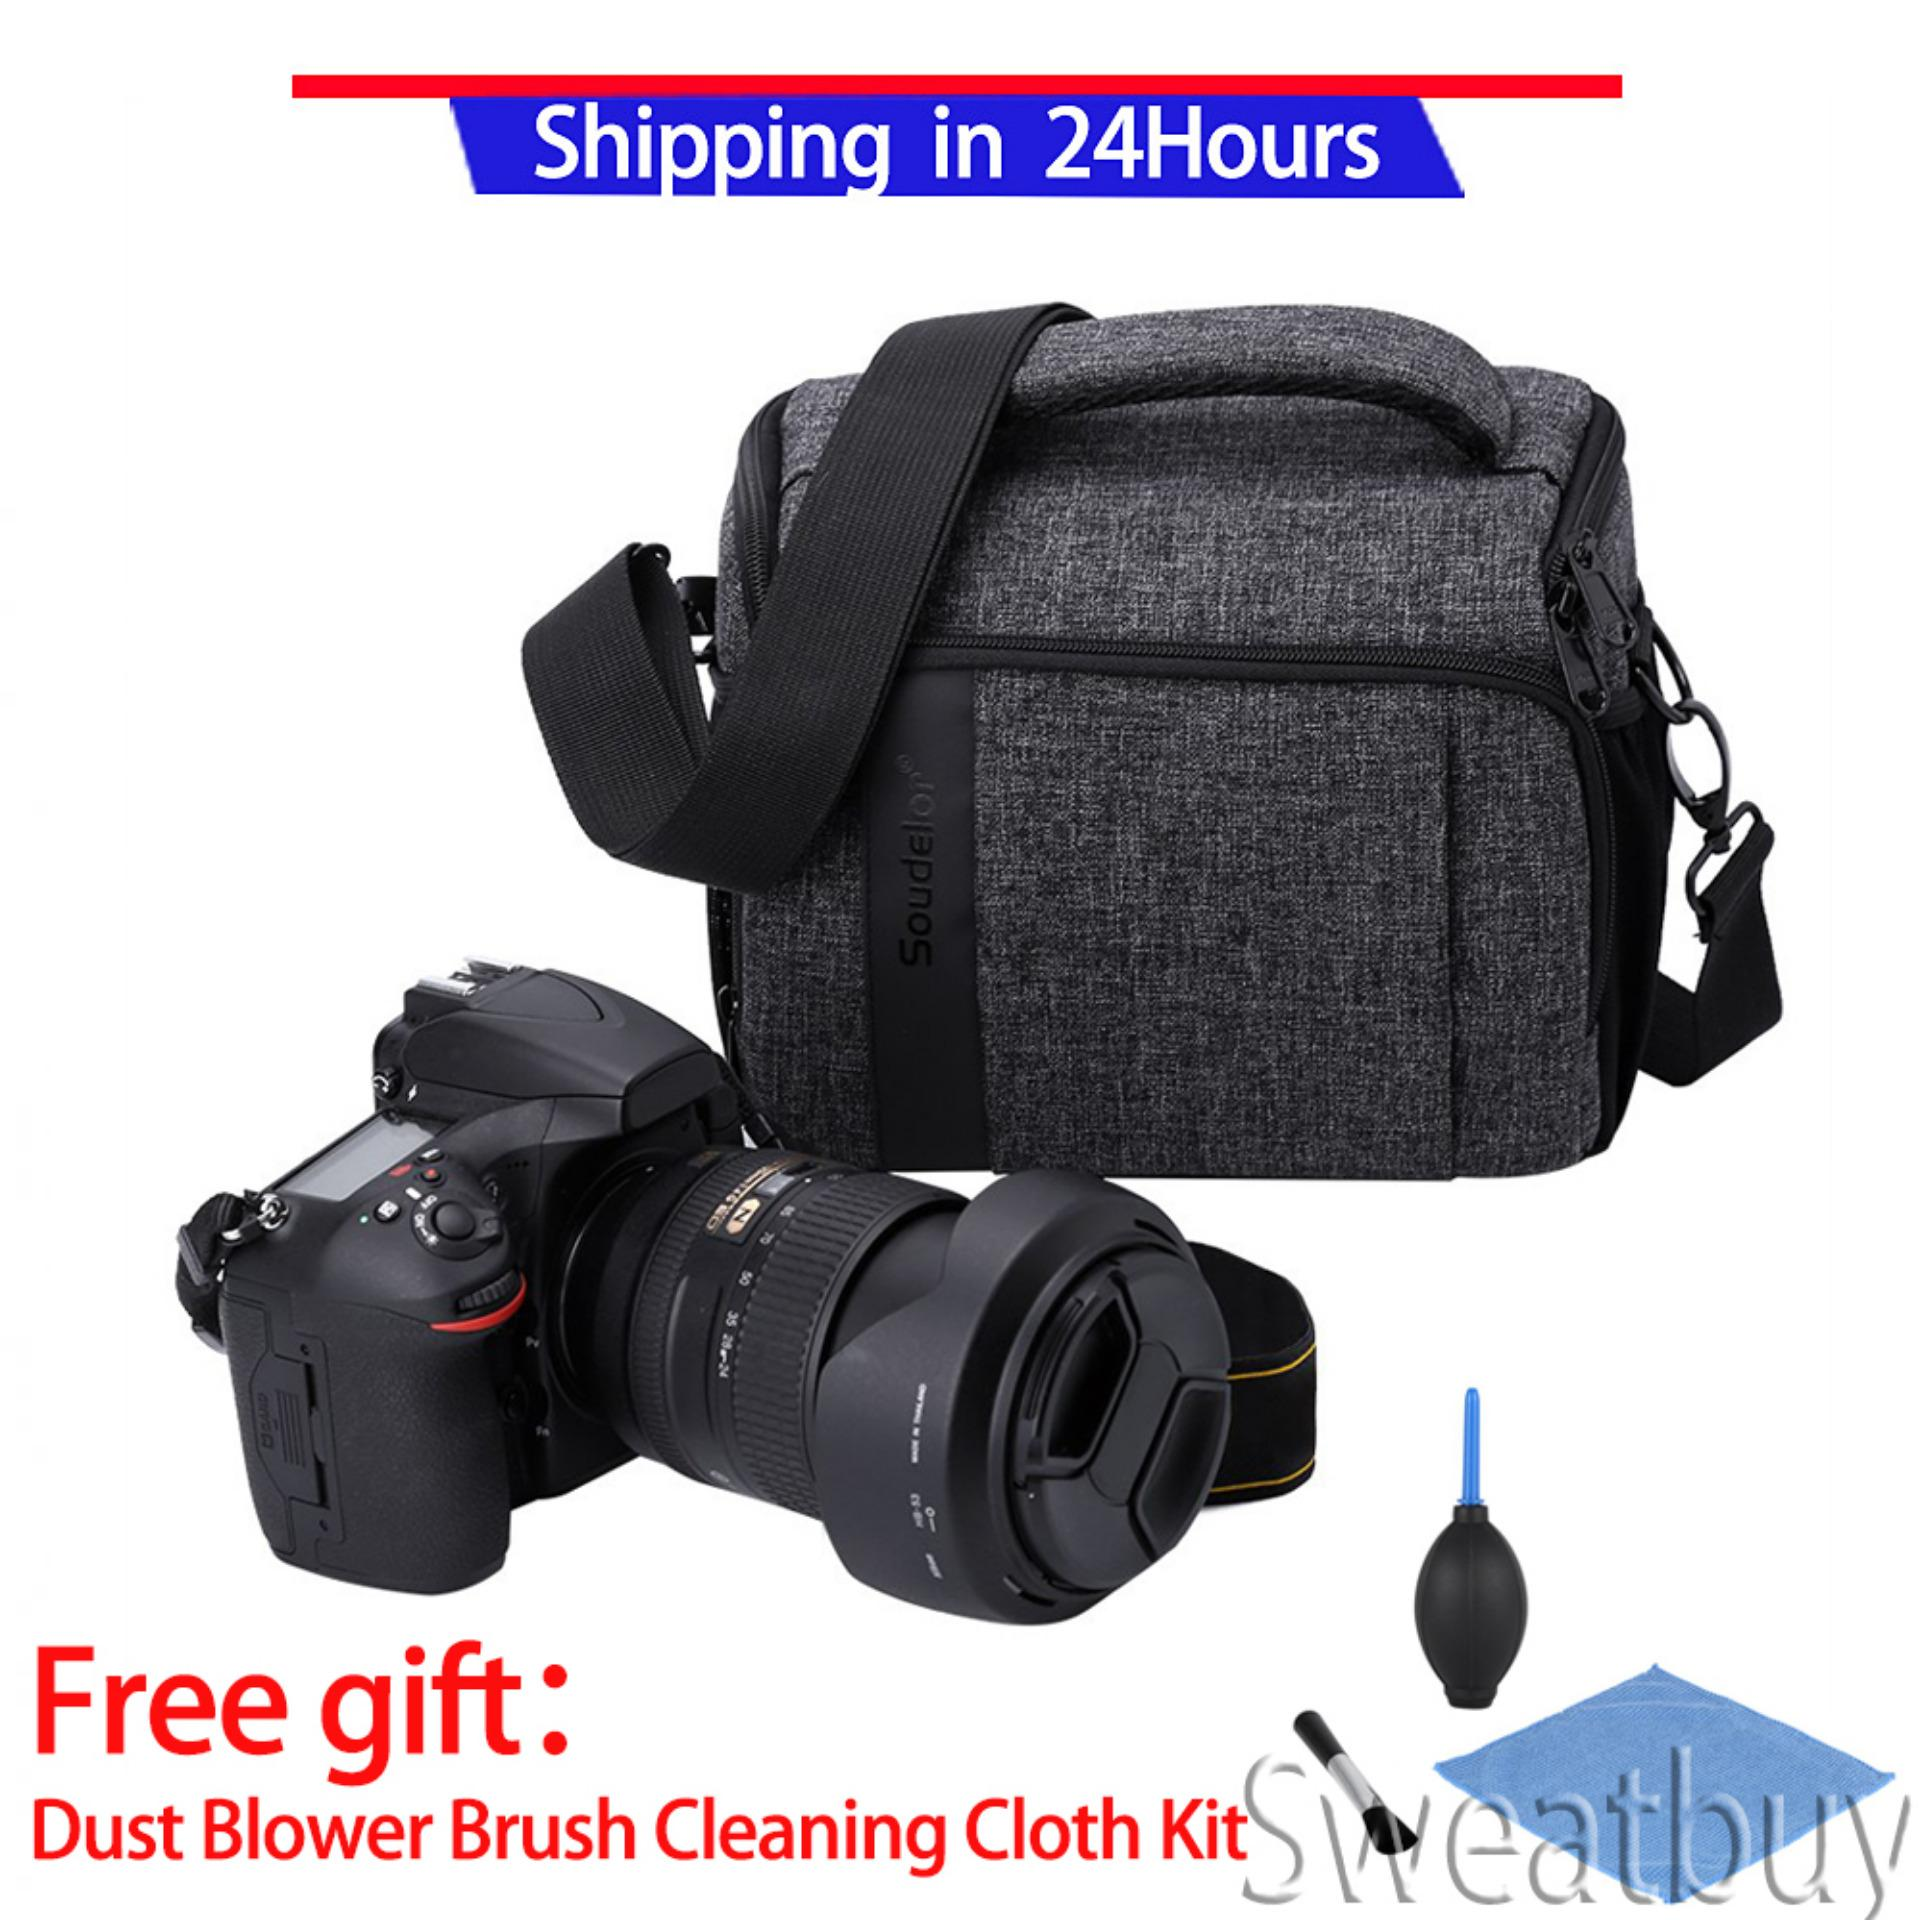 Compare Buy 1 Get 1 Free Gift Canvas Travel Photography Shoulder Camera Bag For Dslr Dark Gray Intl